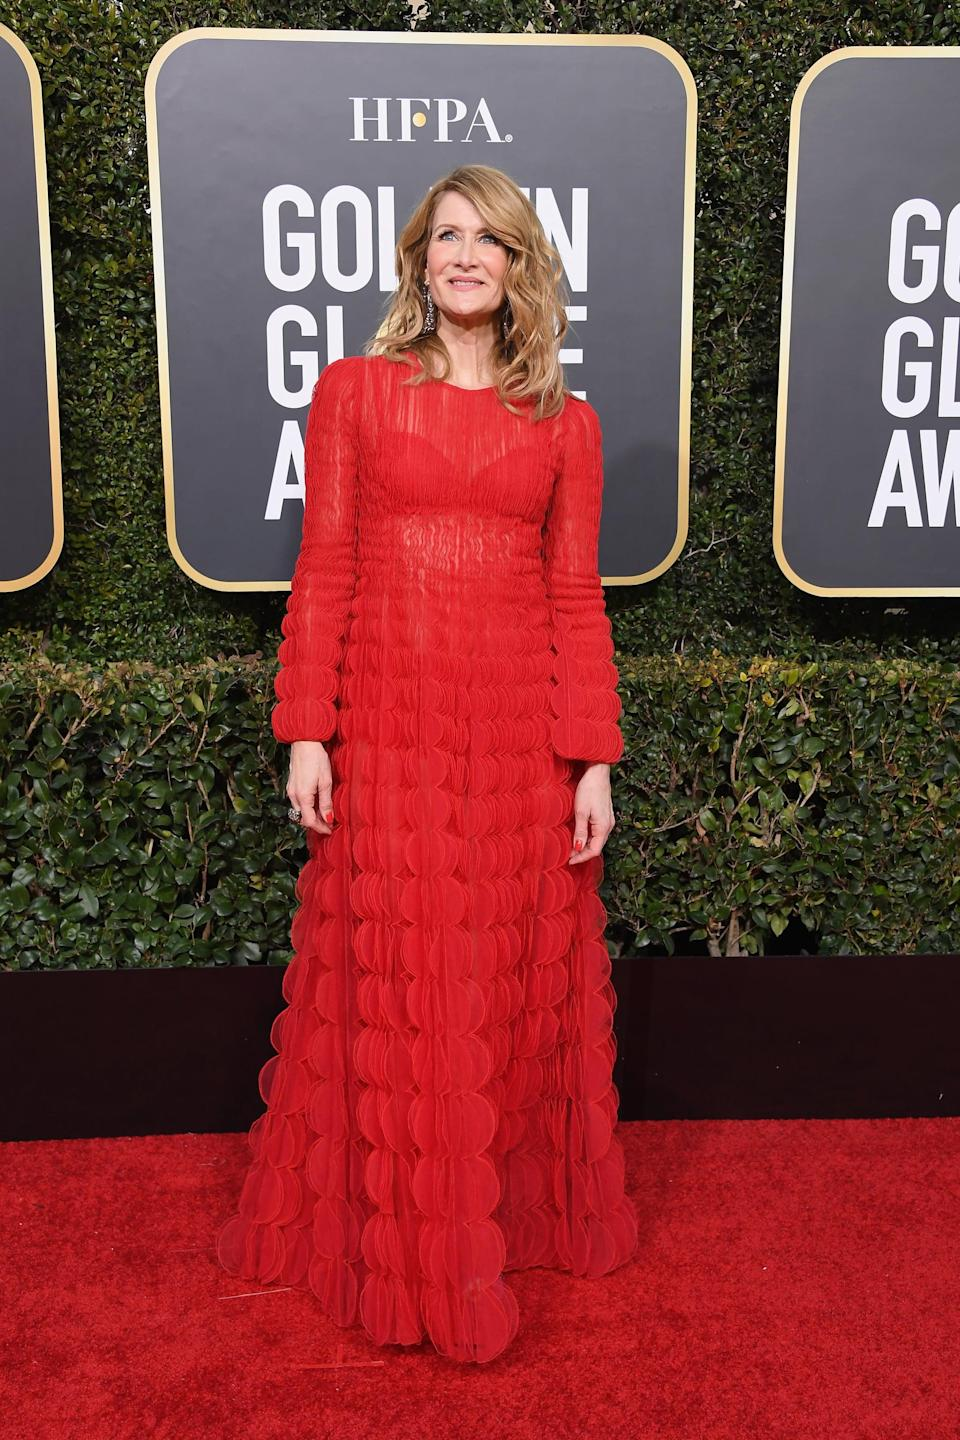 <p>Wearing a Valentino dress with Lorraine Schwartz jewels and a Time's Up ribbon on her purse.</p>